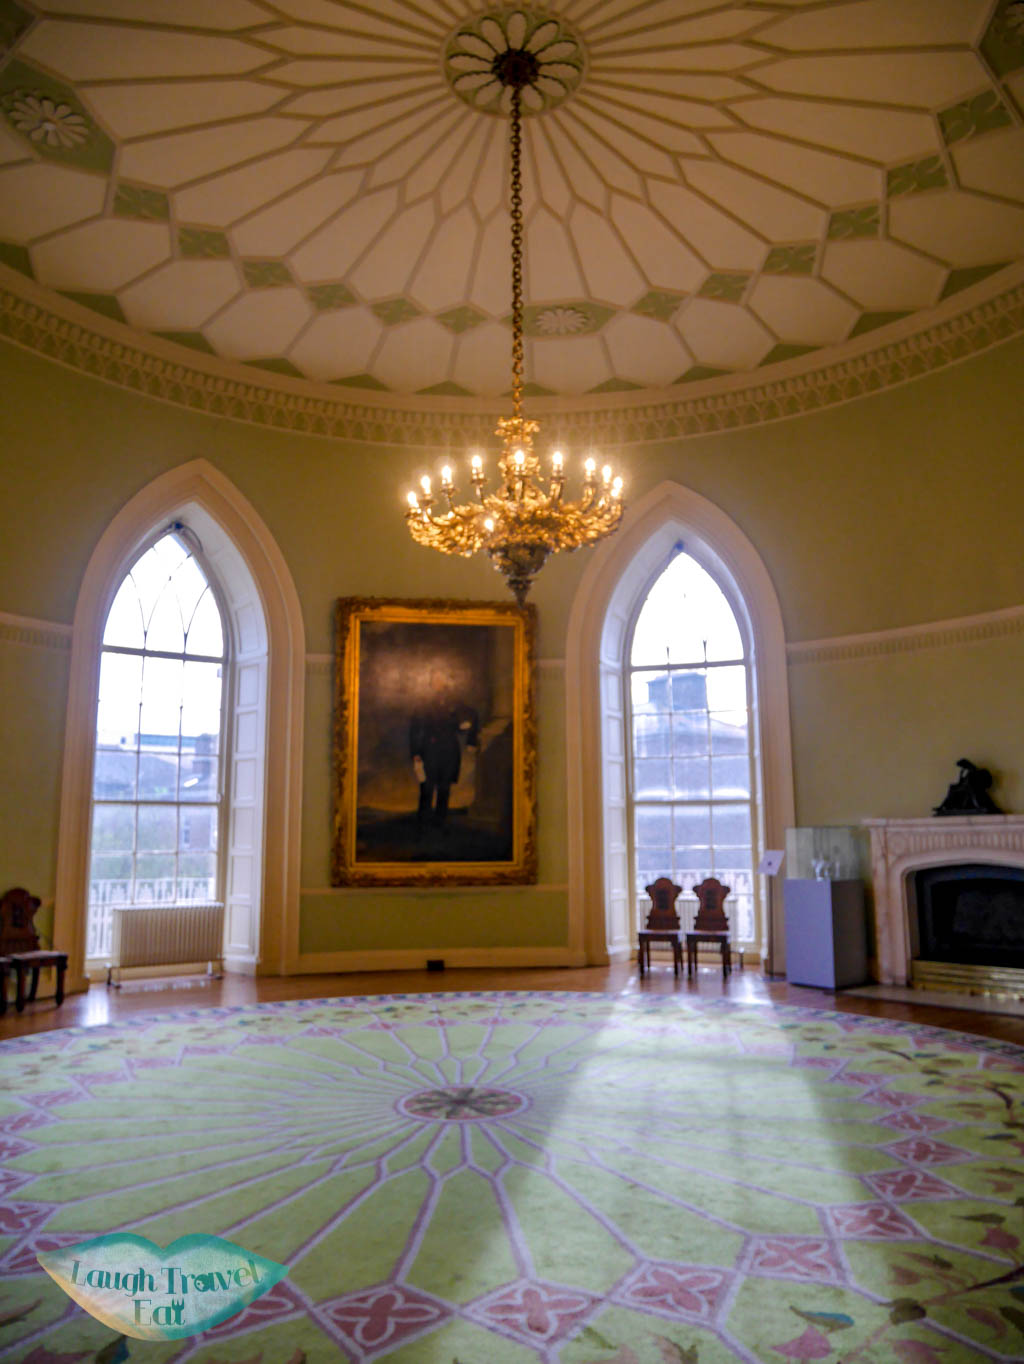 one-of-the-rooms-in-the-state-apartment-Dublin-Castle-Dublin-Ireland-Laugh-Travel-Eat-1